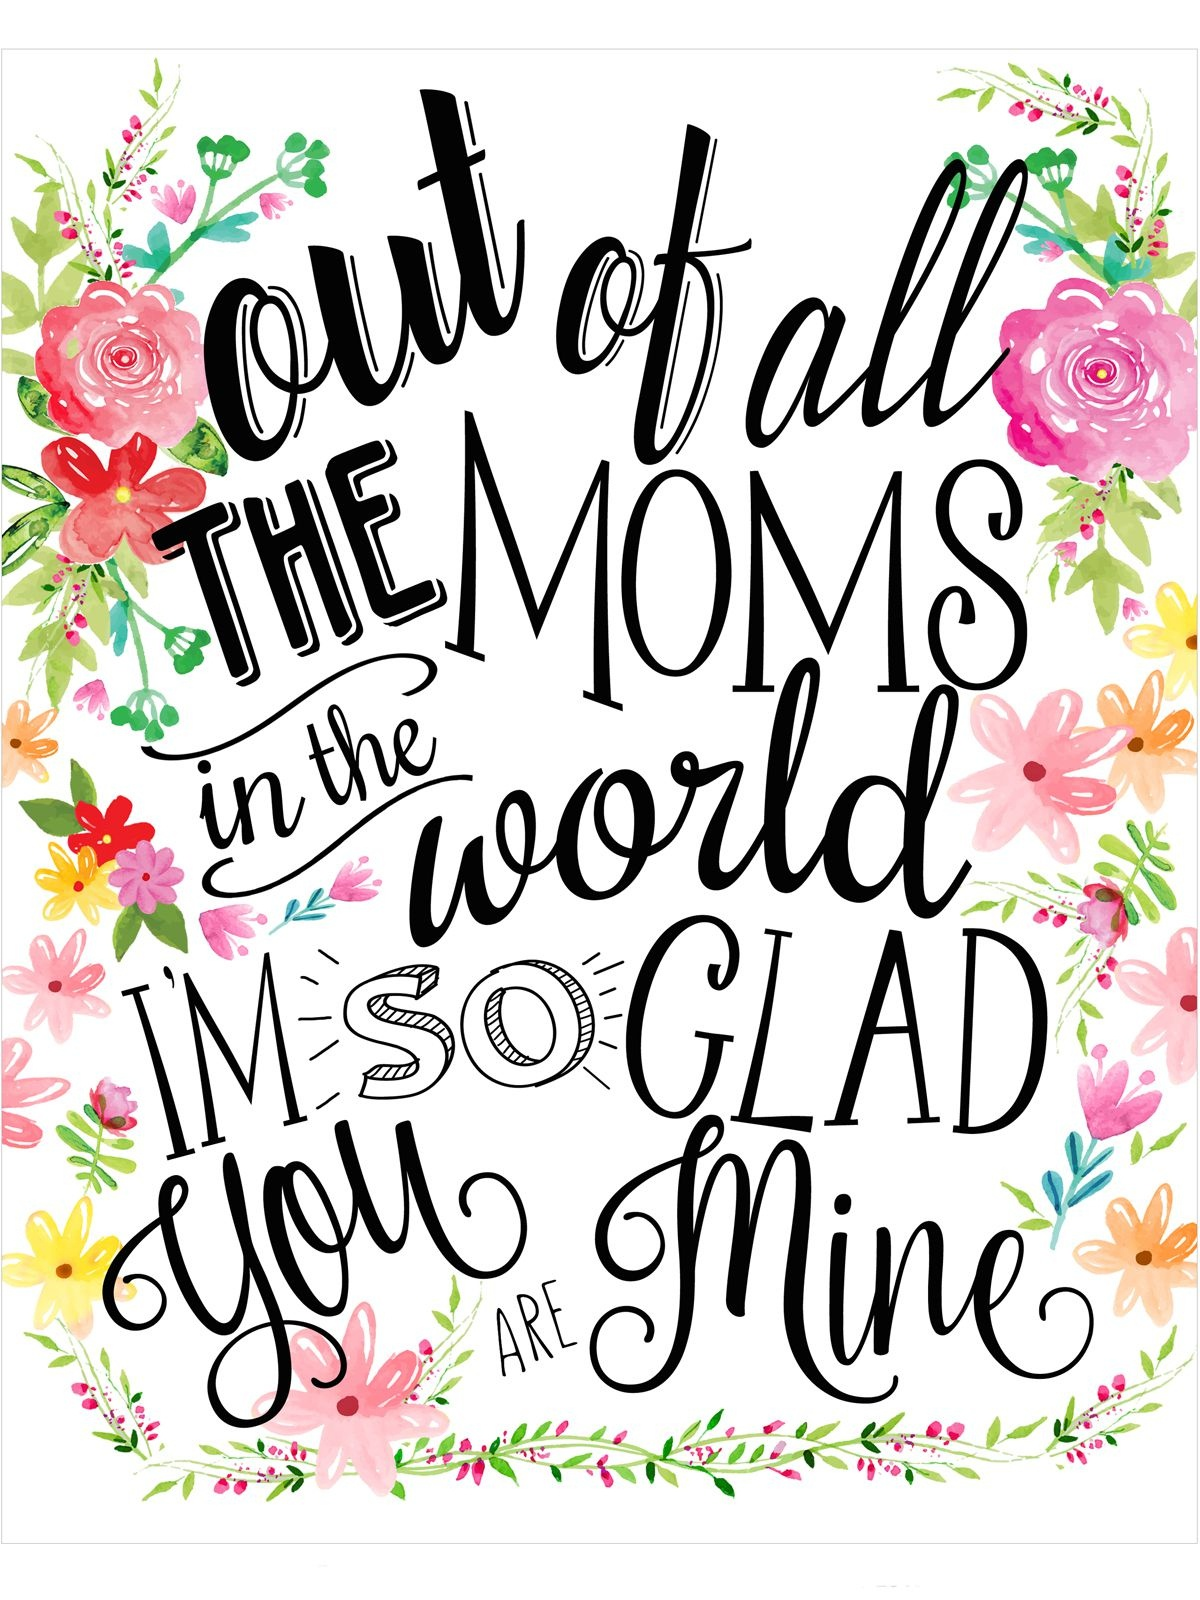 23 Mothers Day Cards - Free Printable Mother's Day Cards - Free Printable Mothers Day Cards To My Wife